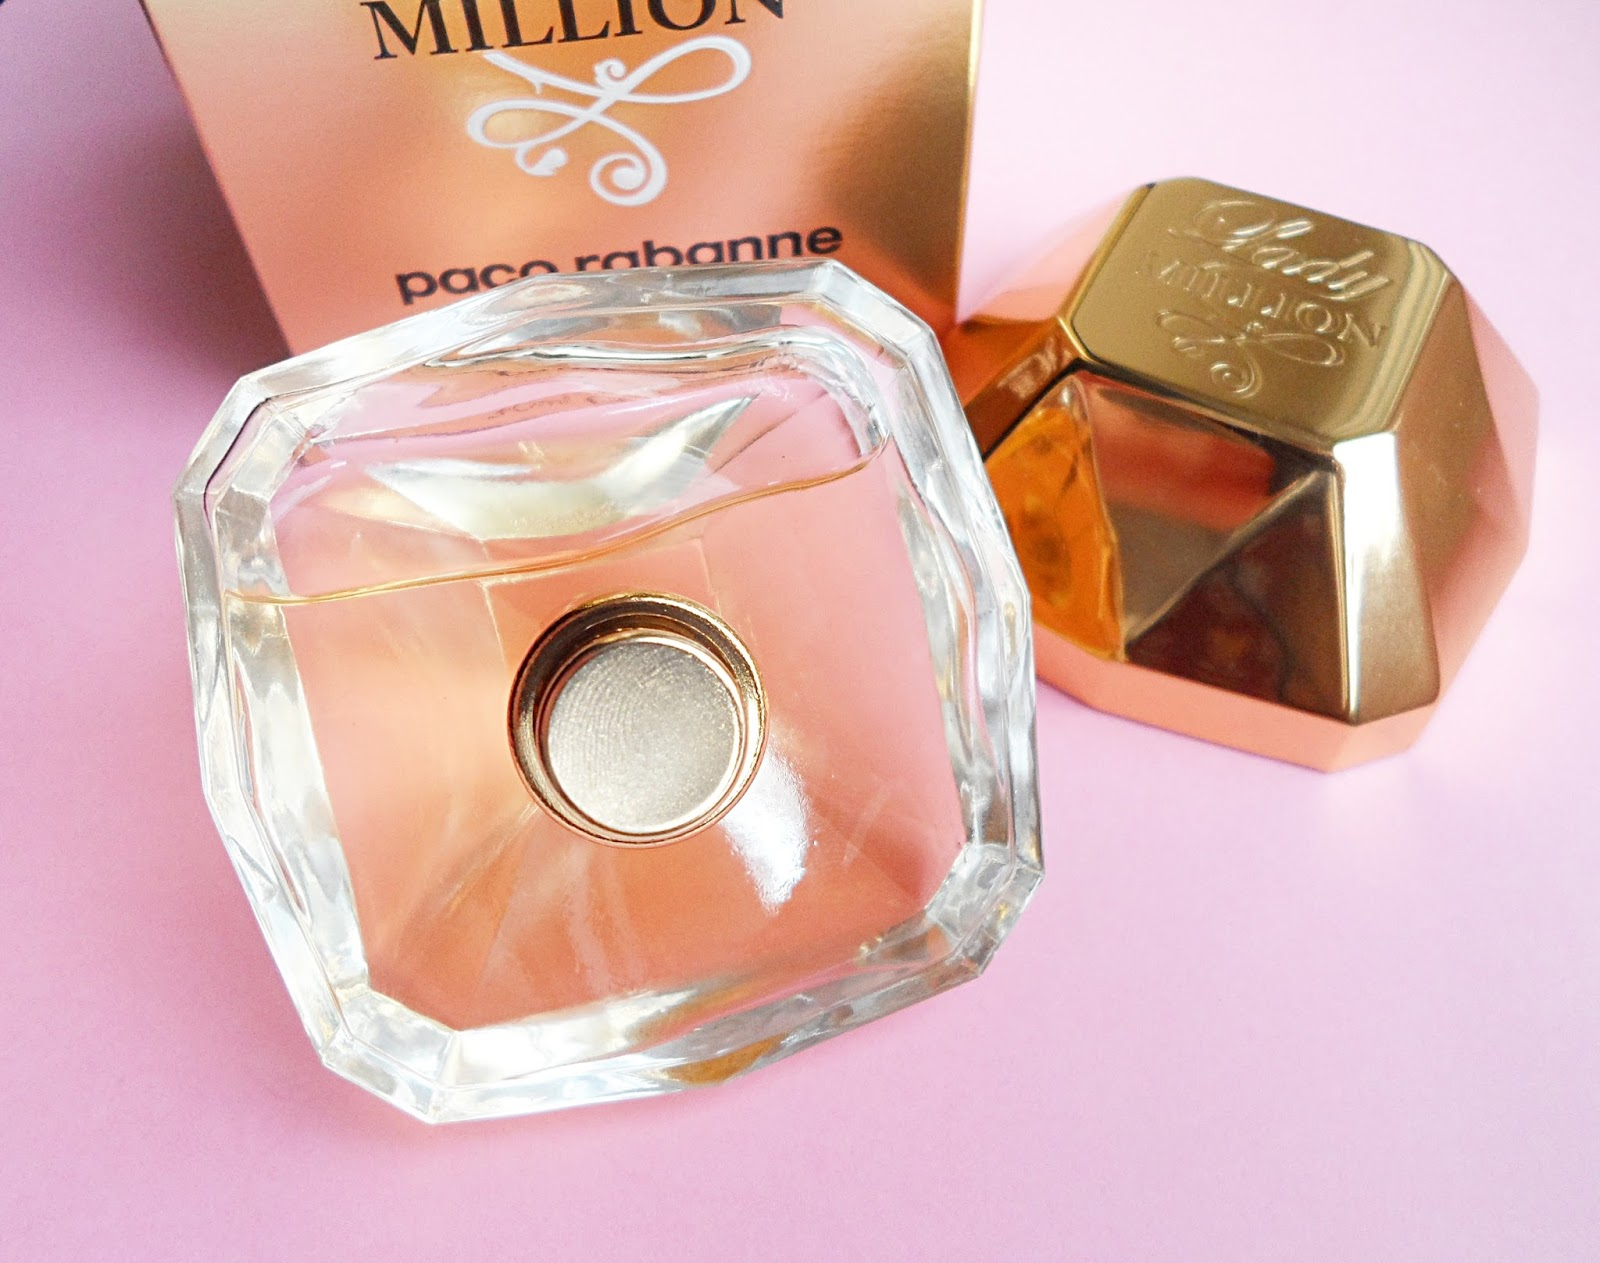 paco rabanne million review blogger buy perfume online liz breygel